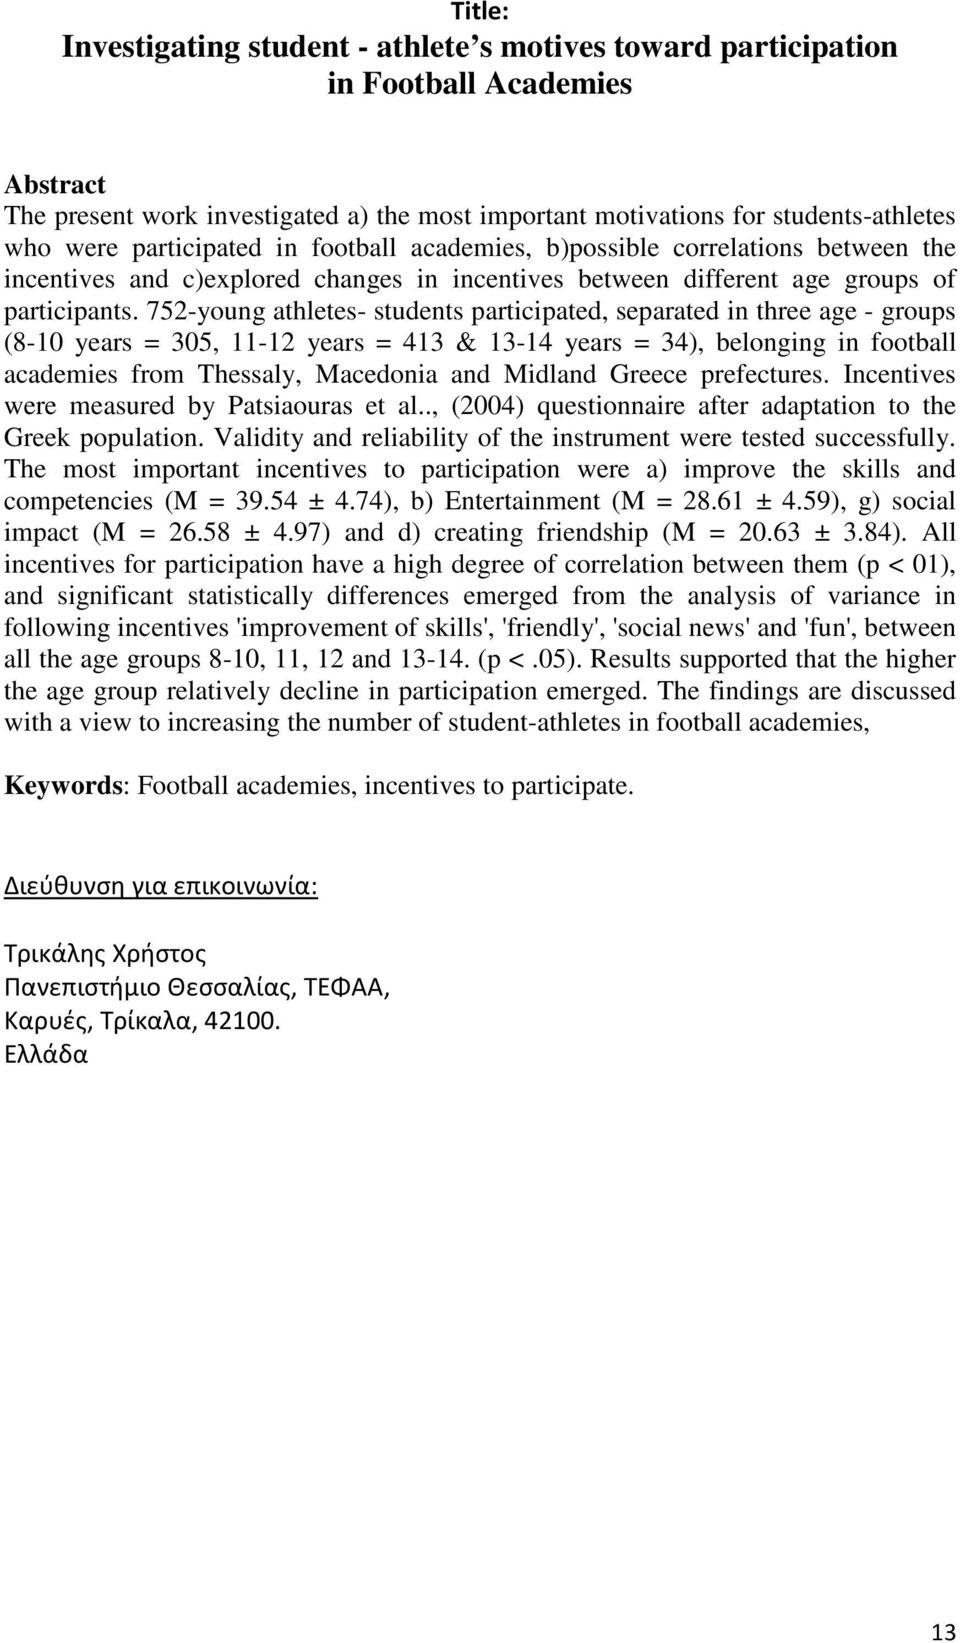 752-young athletes- students participated, separated in three age - groups (8-10 years = 305, 11-12 years = 413 & 13-14 years = 34), belonging in football academies from Thessaly, Macedonia and